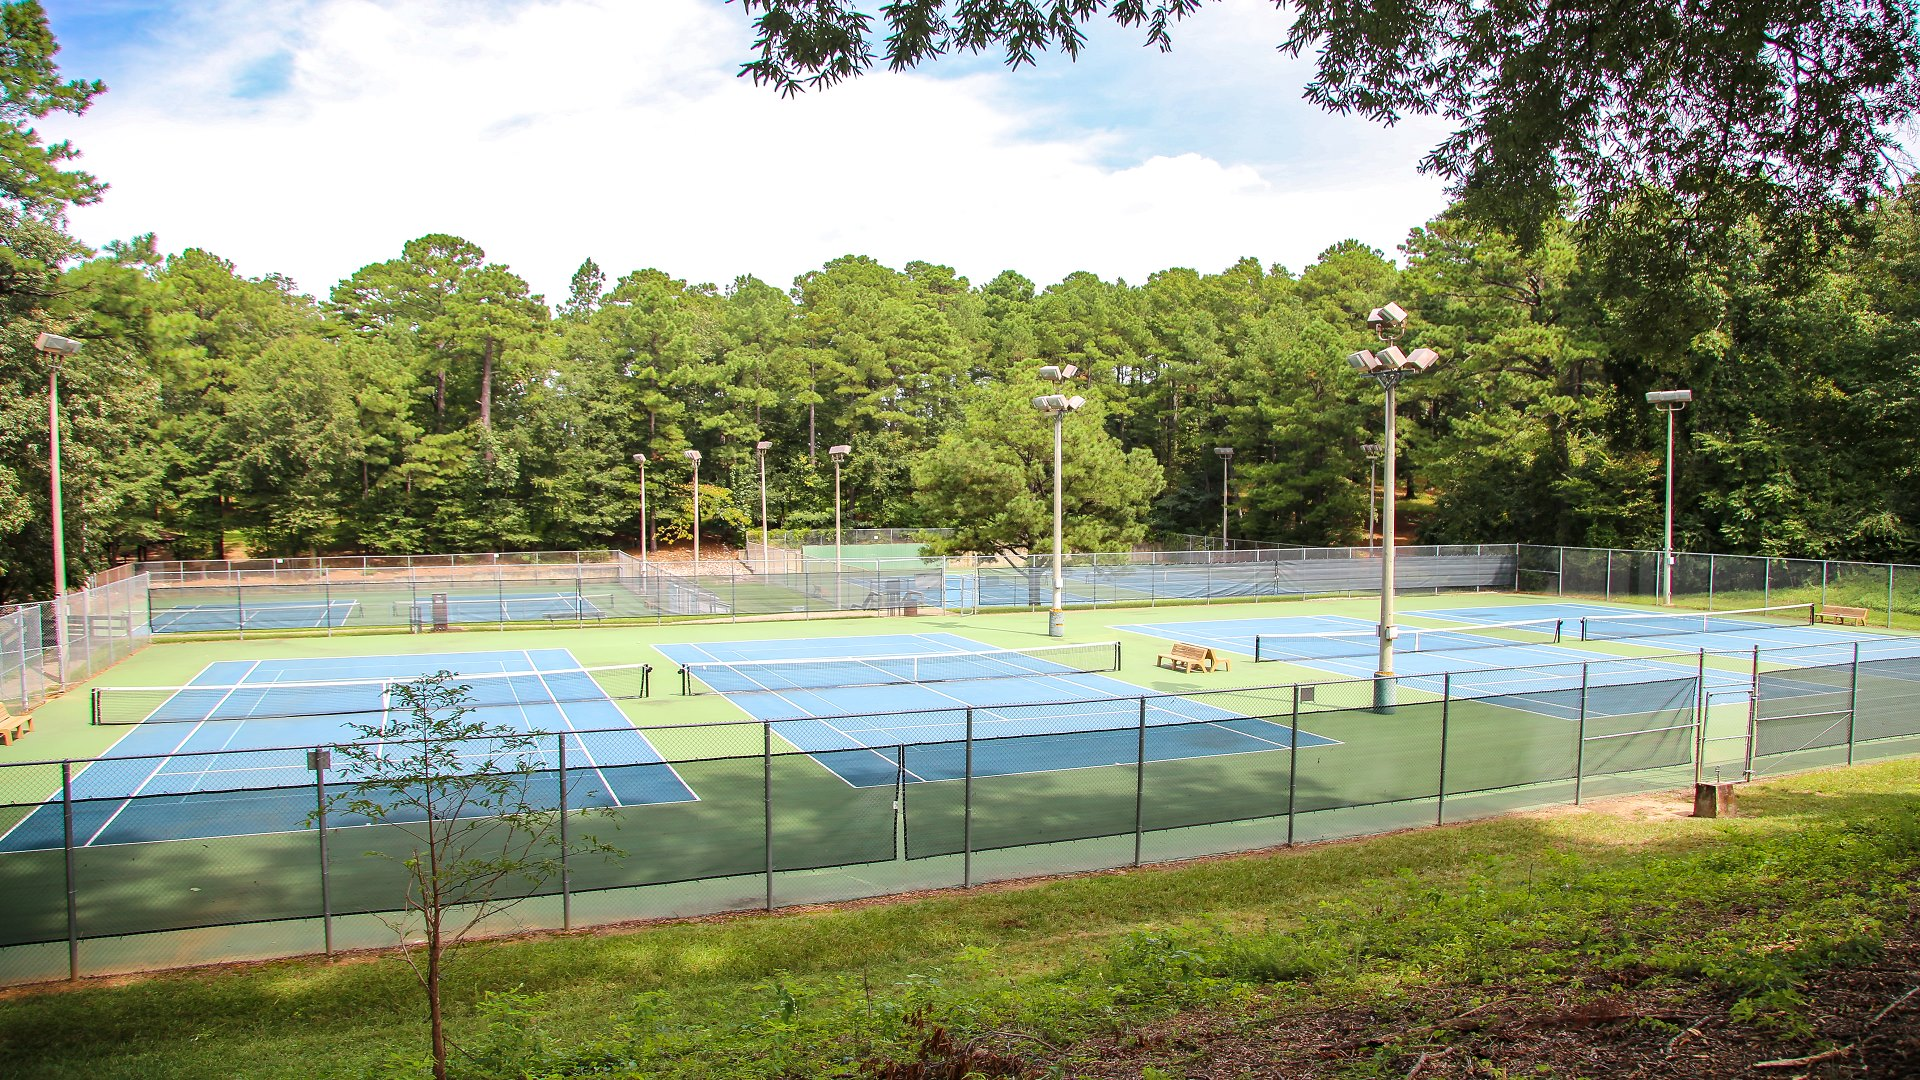 Shot of the eight tennis courts at Biltmore Hills Park